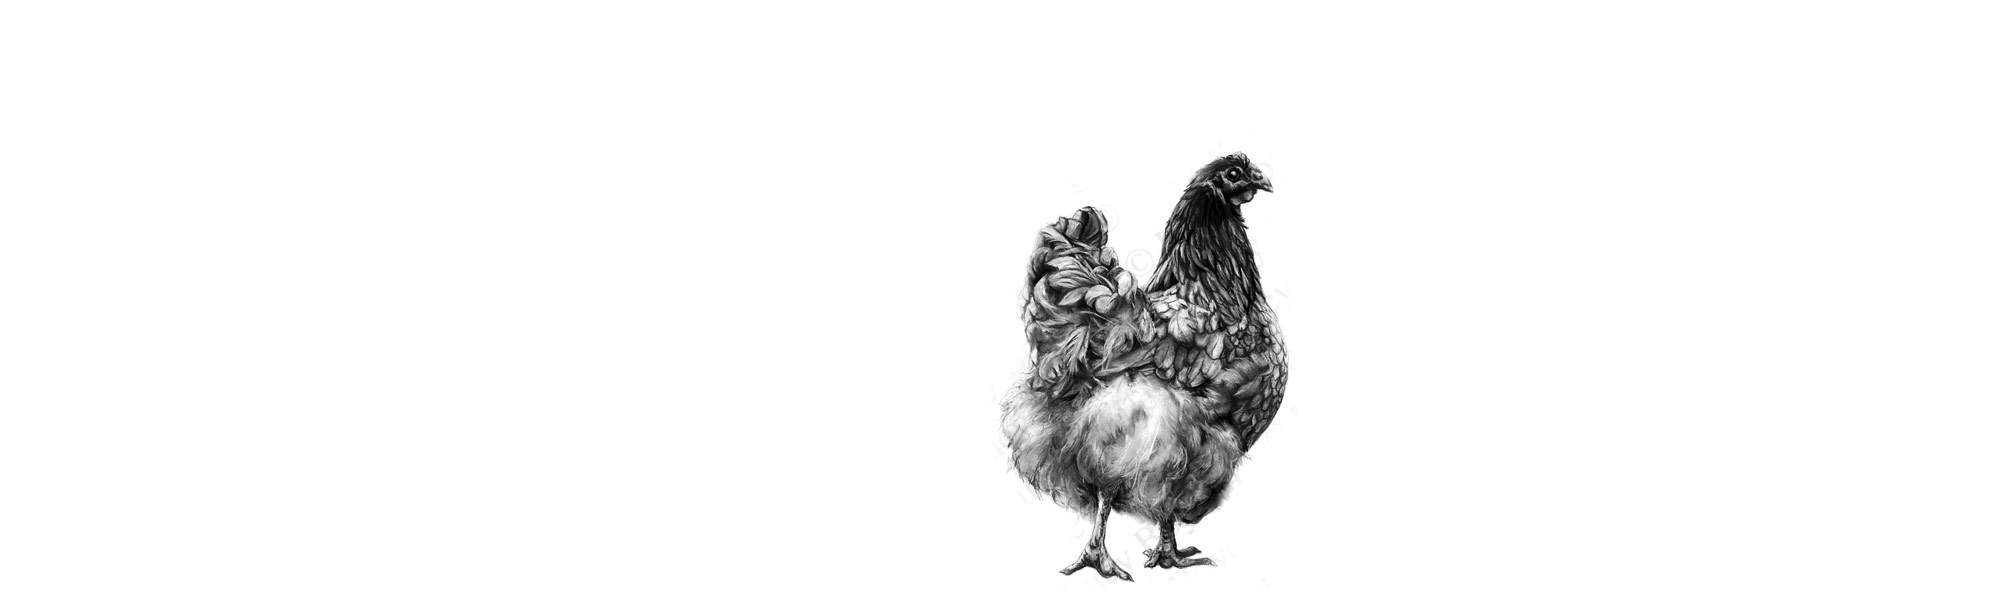 lucy-boydell-hen-drawing